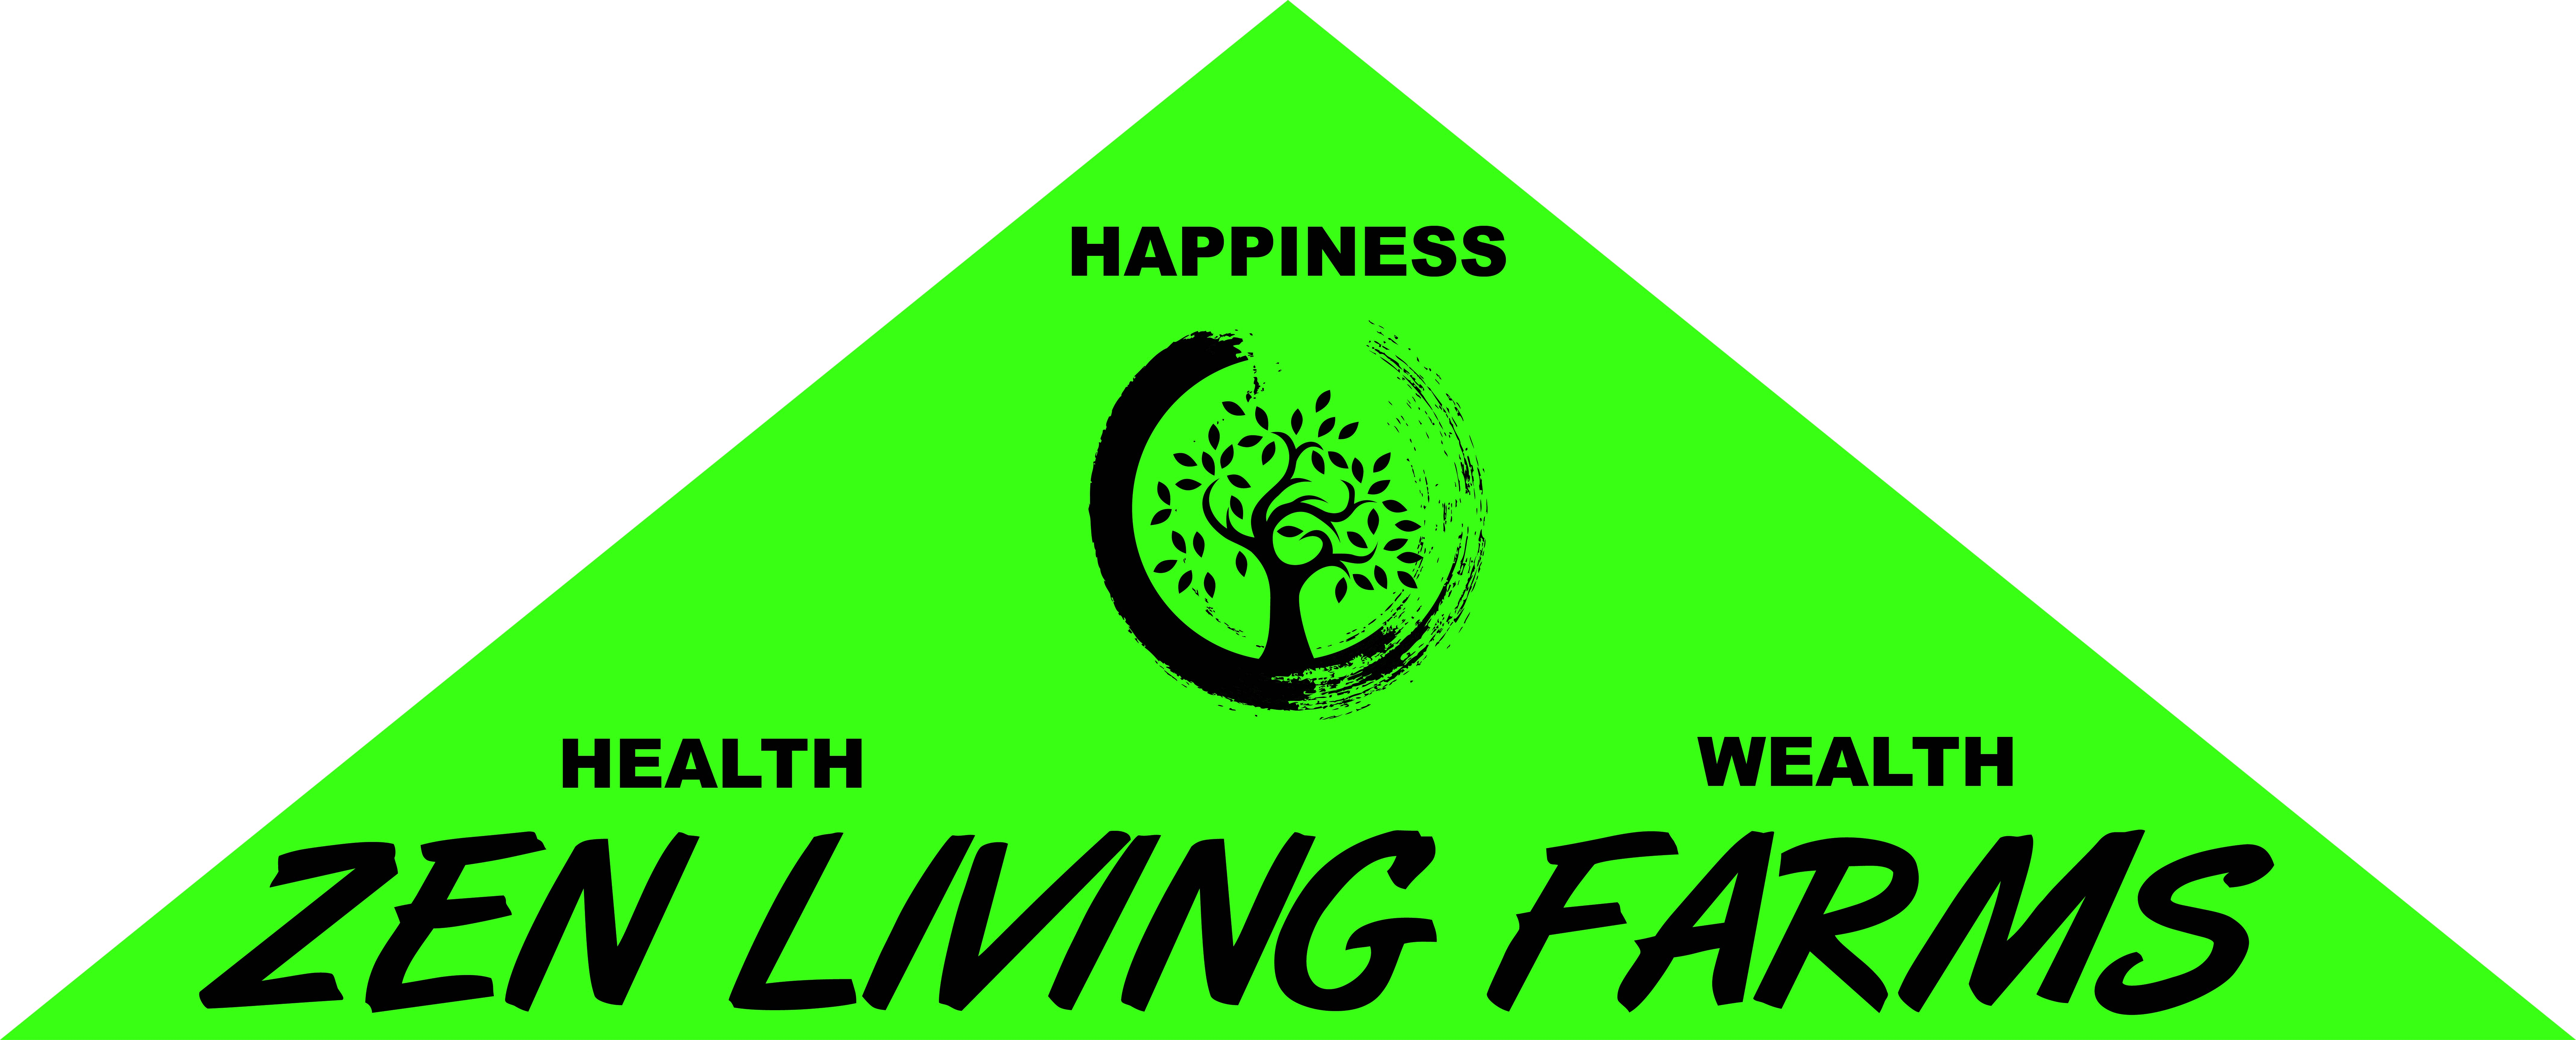 OUR MISSION IS TO HELP YOU TO ACHEIVE THE GOAL OF LIVING A HAPPY, HEALTHY, WEALTHY, FULFILLED AND BALANCED LIFE